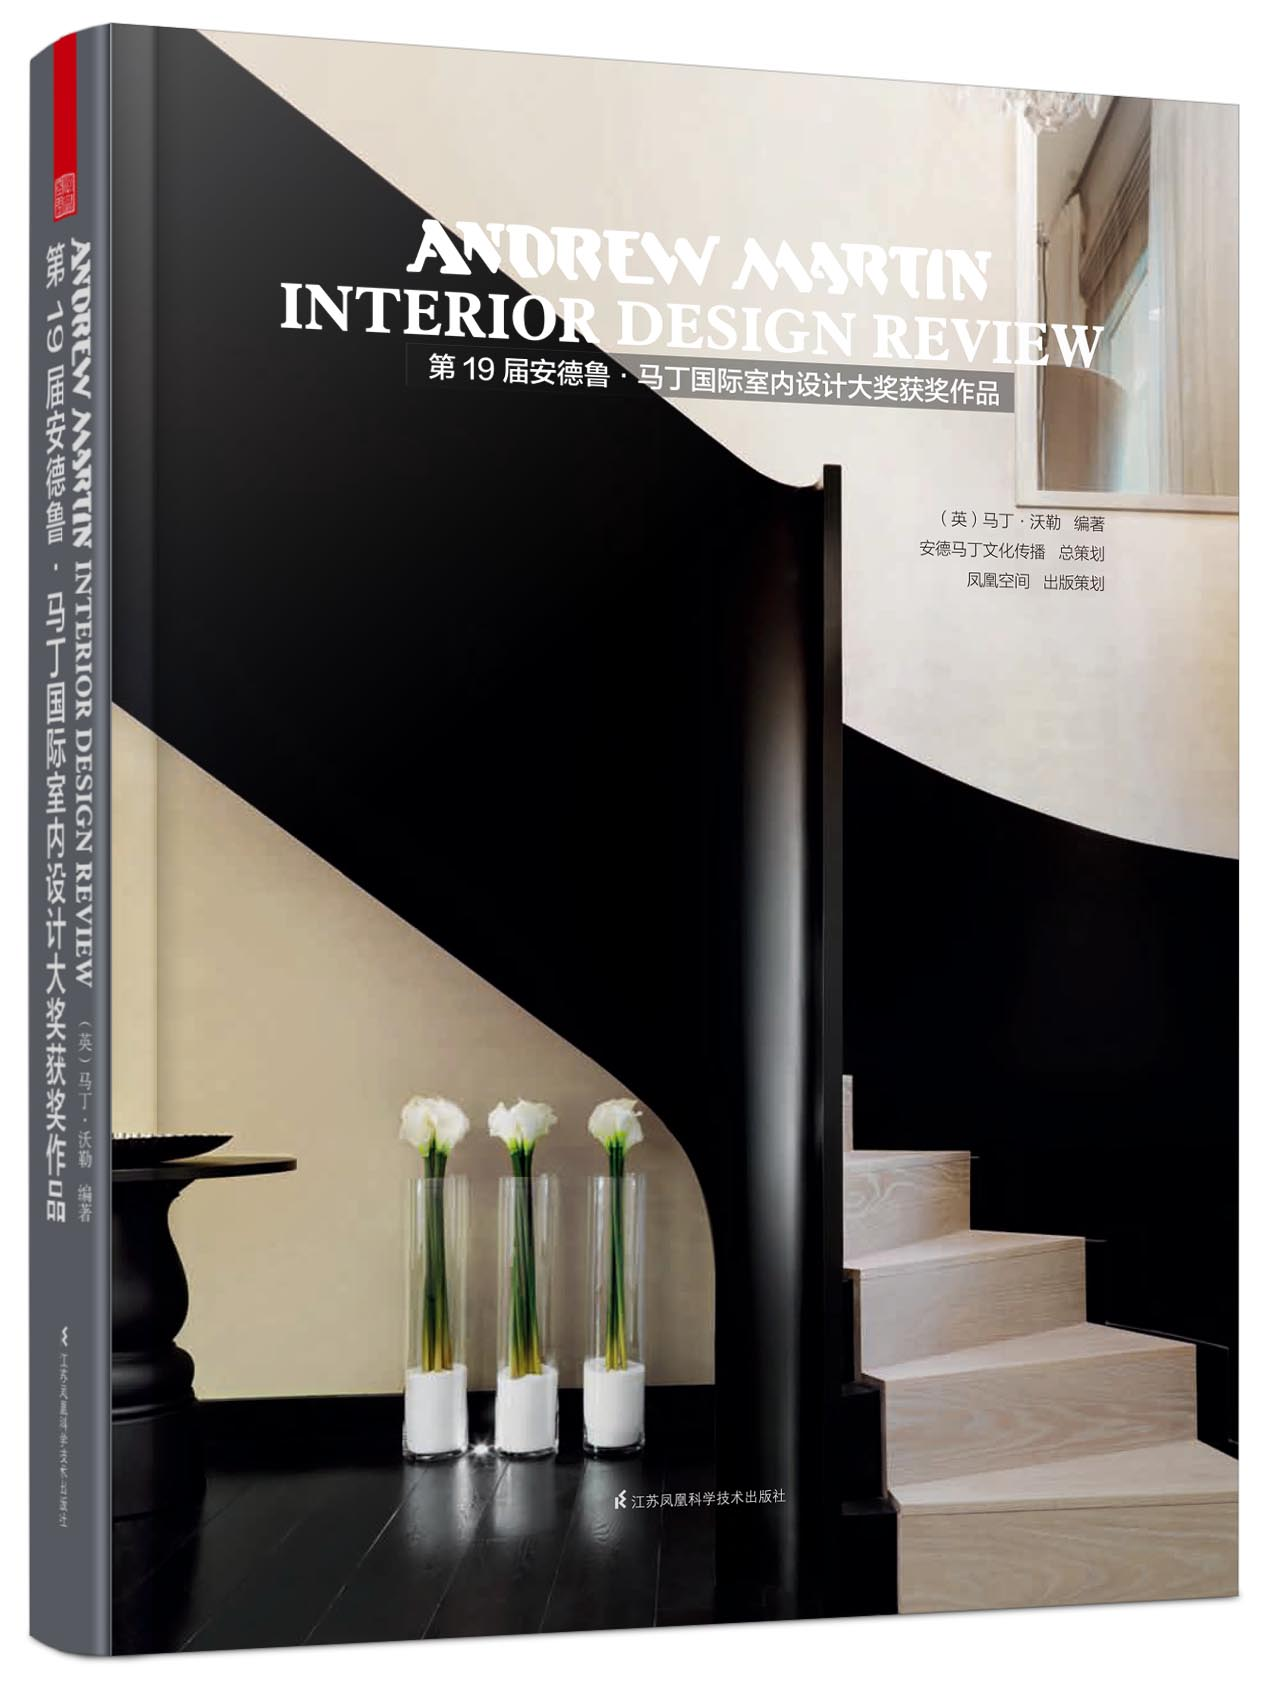 Book Name Andrew Martin Interior Design Review Vol19